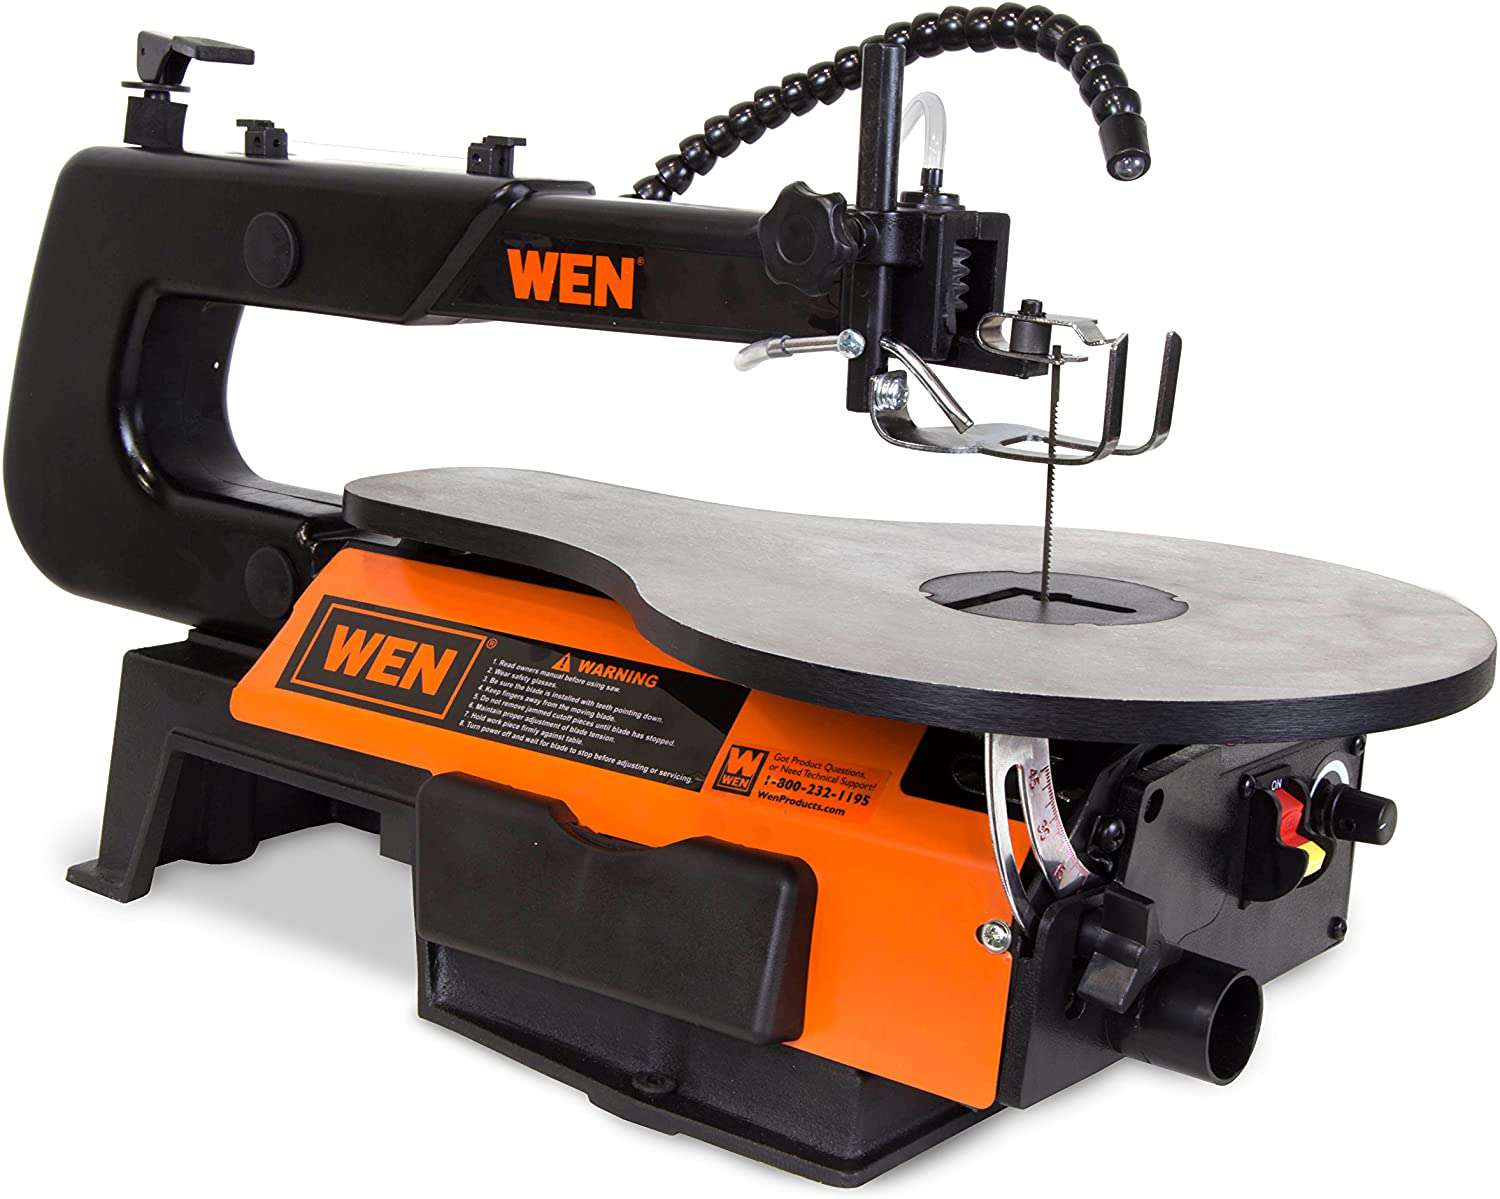 16-Inch Variable-Speed Scroll Saw